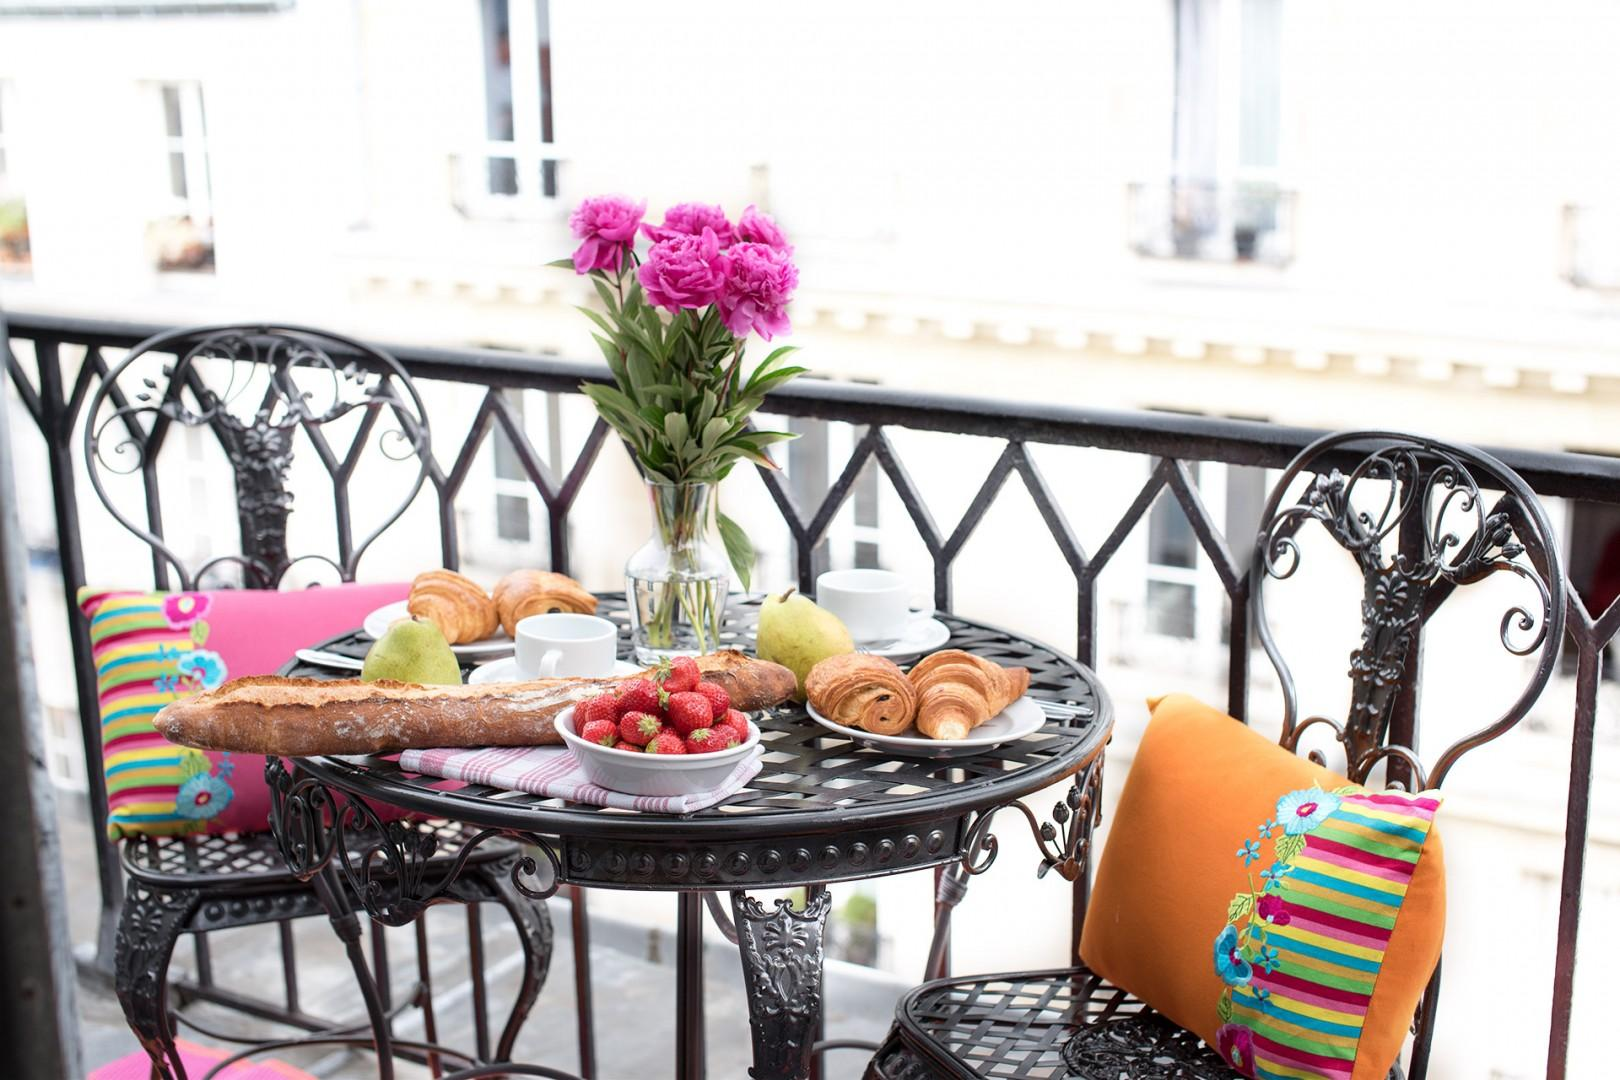 Greet the day over a leisurely breakfast on your balcony.